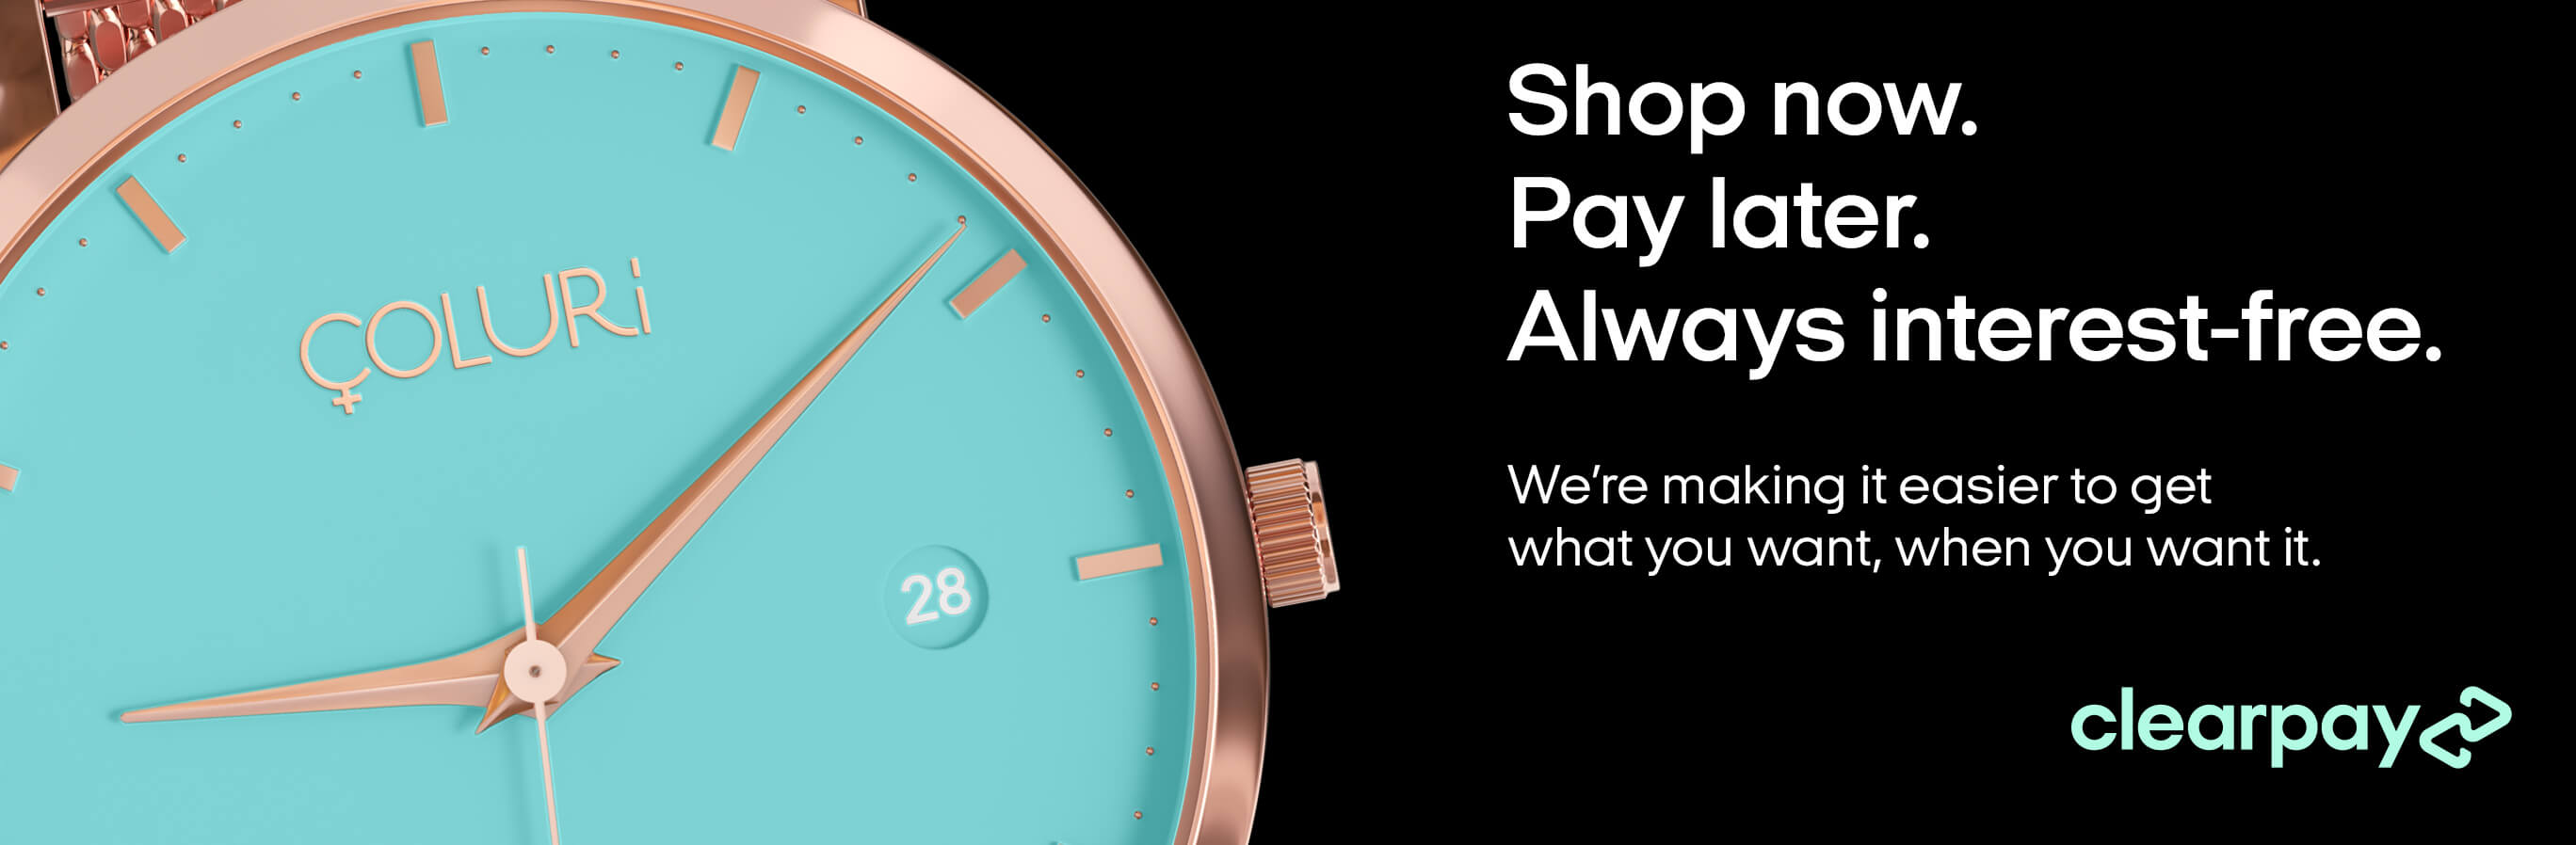 Clearpay. Shop now. Pay later. Always interest-free.